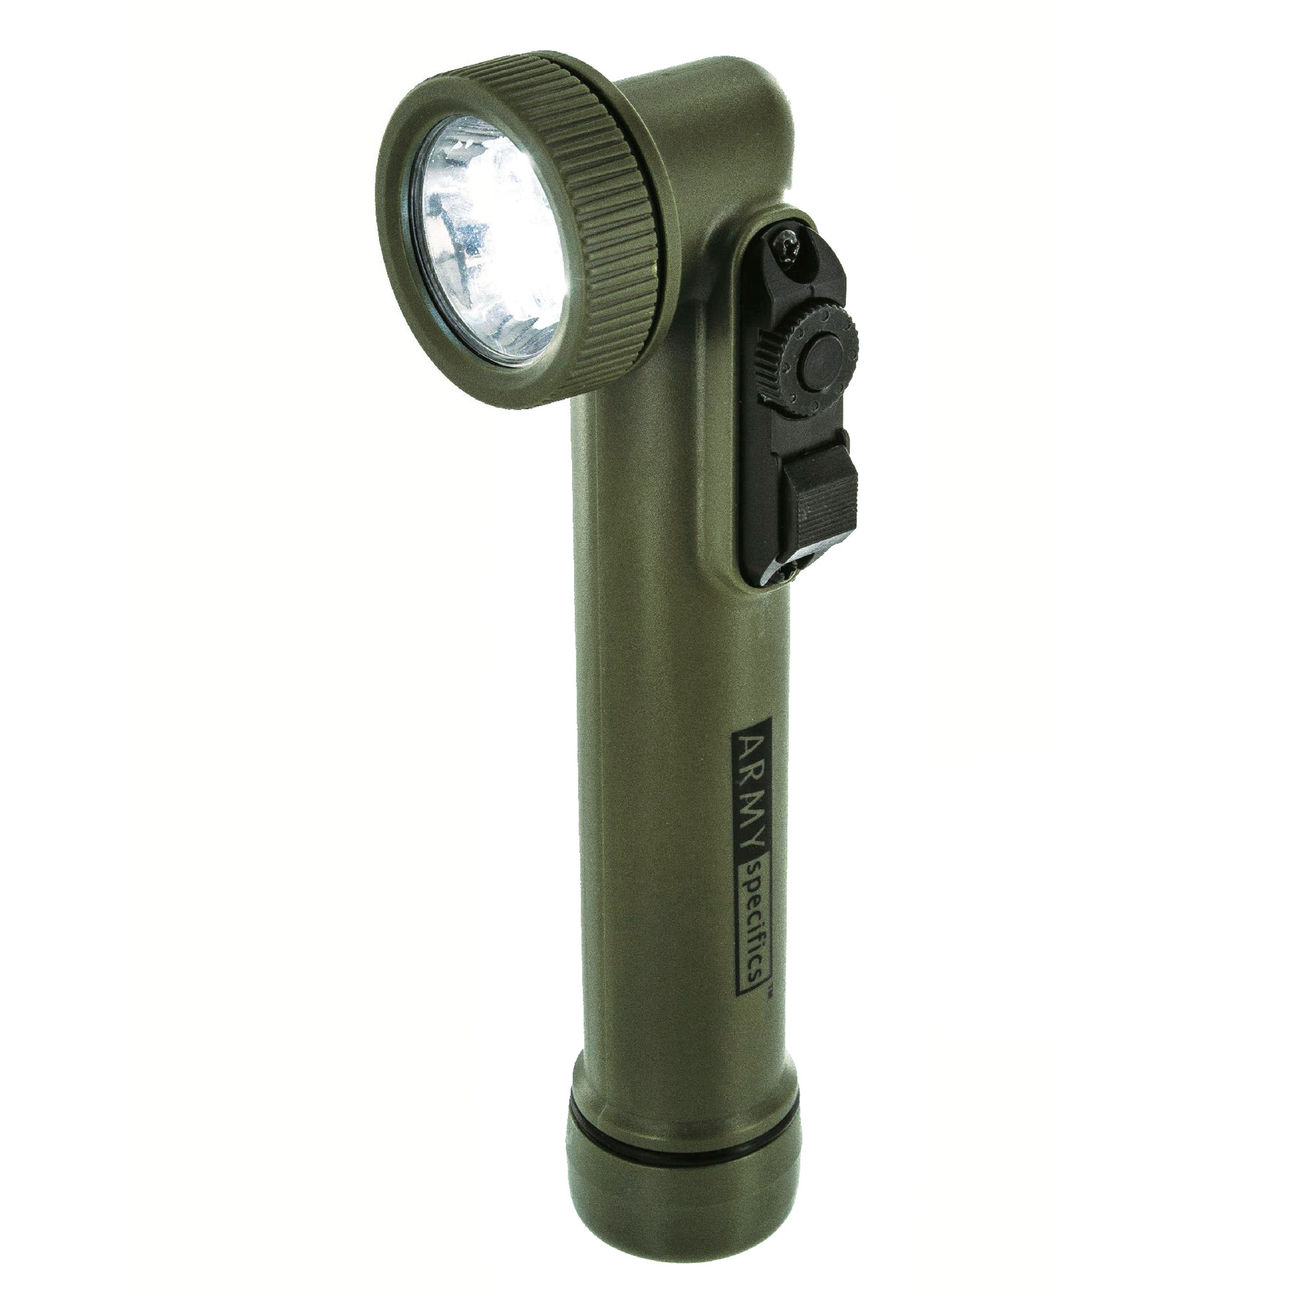 Highlander LED Winkelstablampe G.I. Flashlight Torch 30 Lumen oliv 0